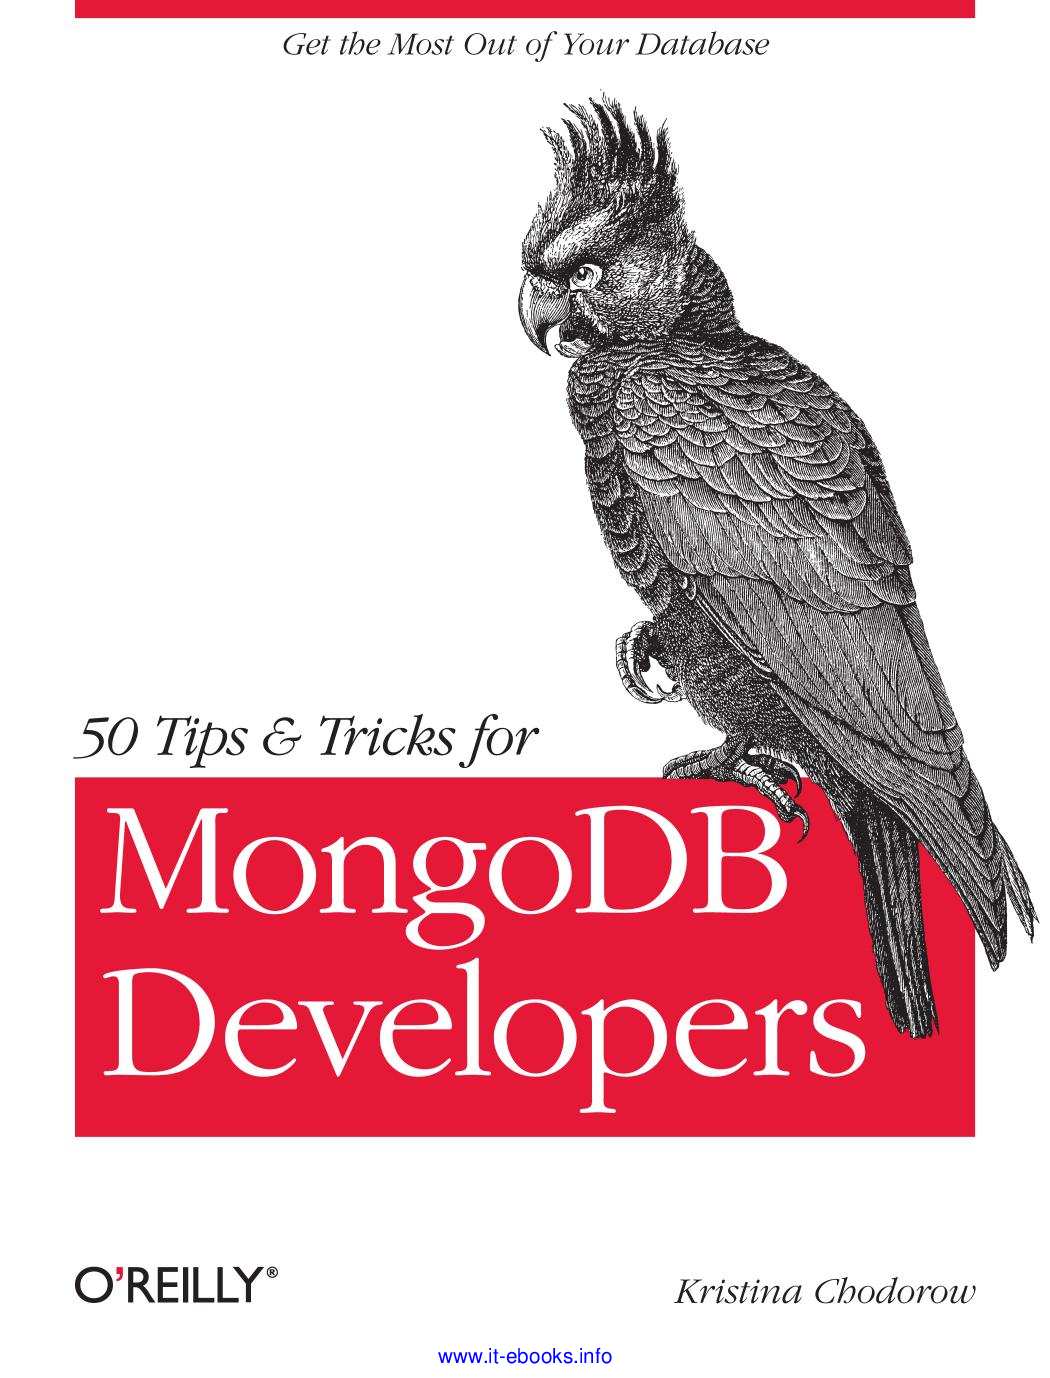 50 Tips & Tricks for MongoDb Developers - Kristina Chodorow